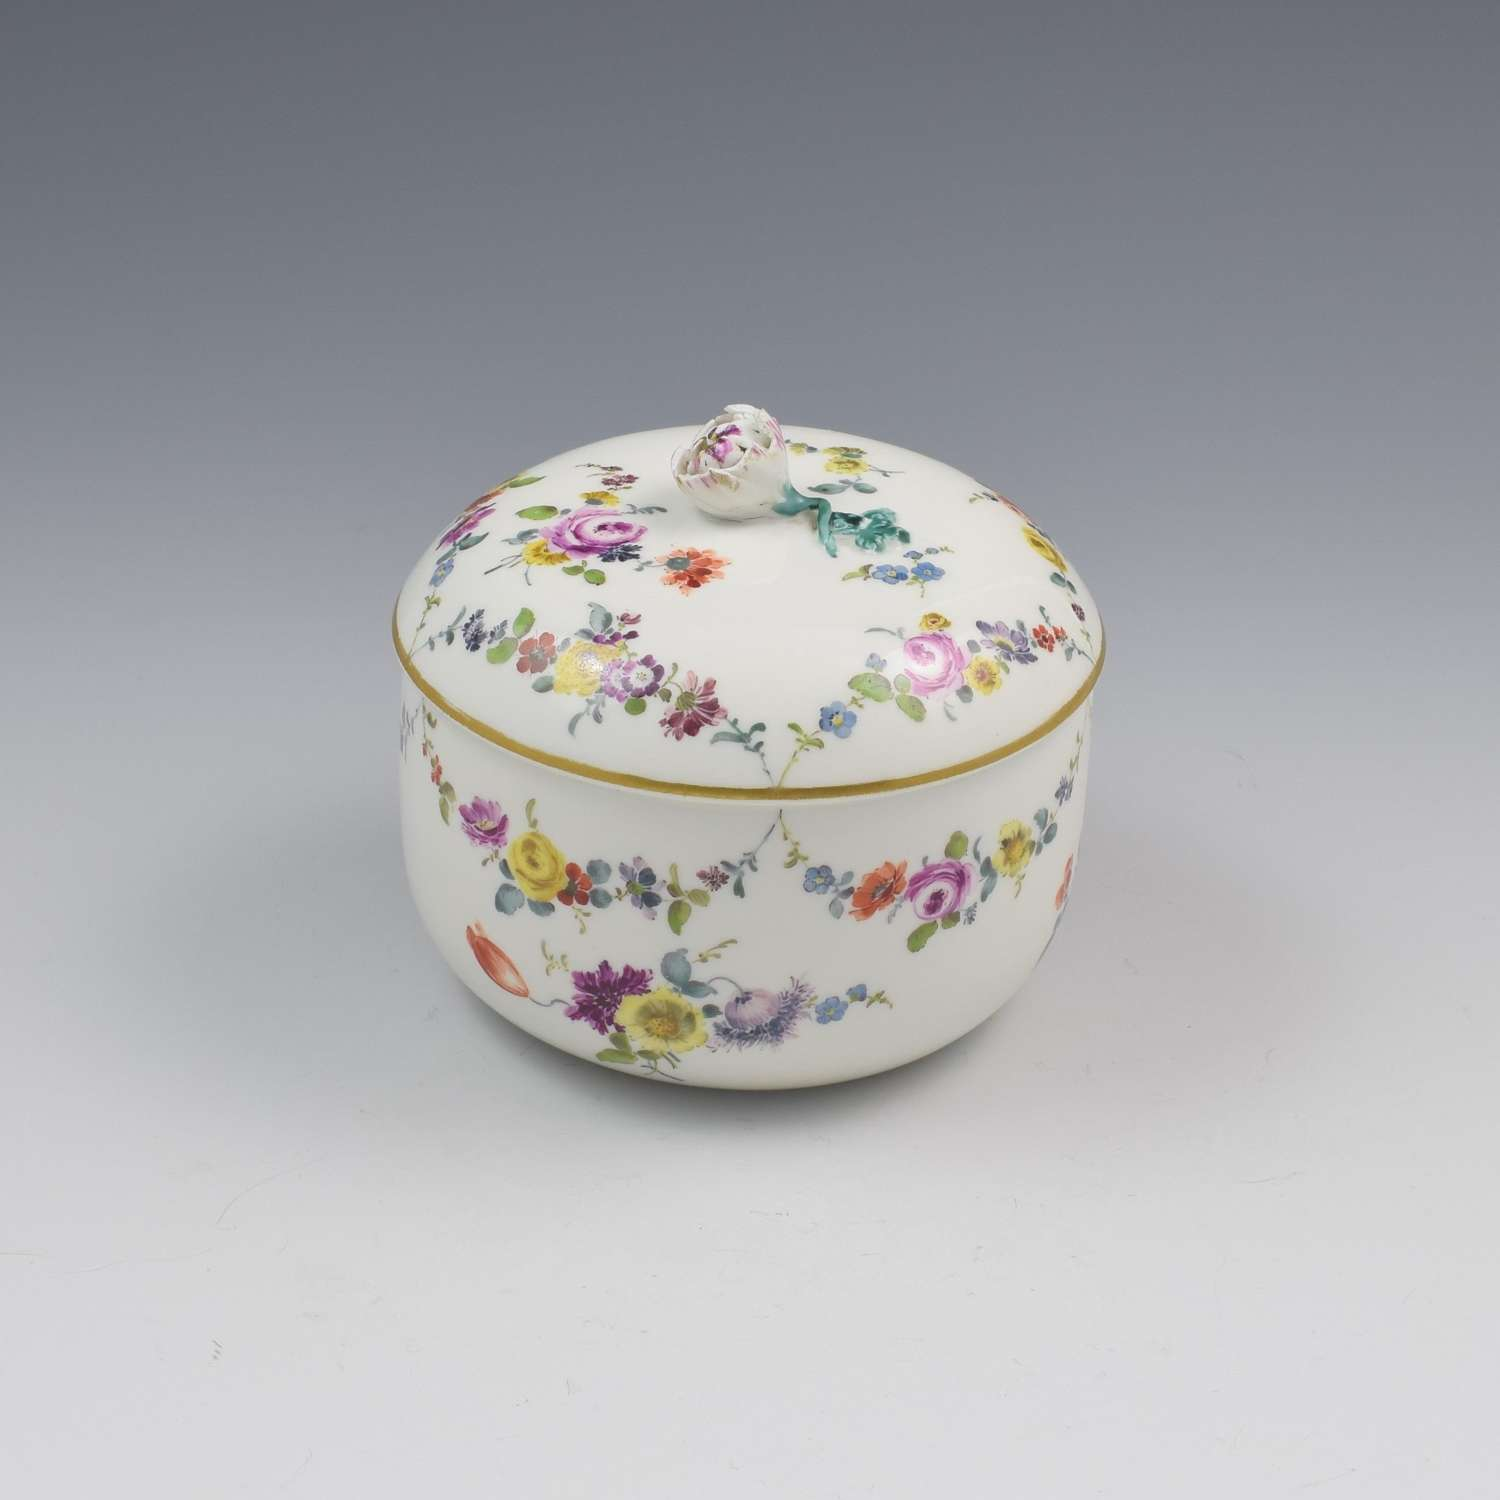 18th Century Meissen Porcelain Sugar Bowl & Cover c.1763-1774